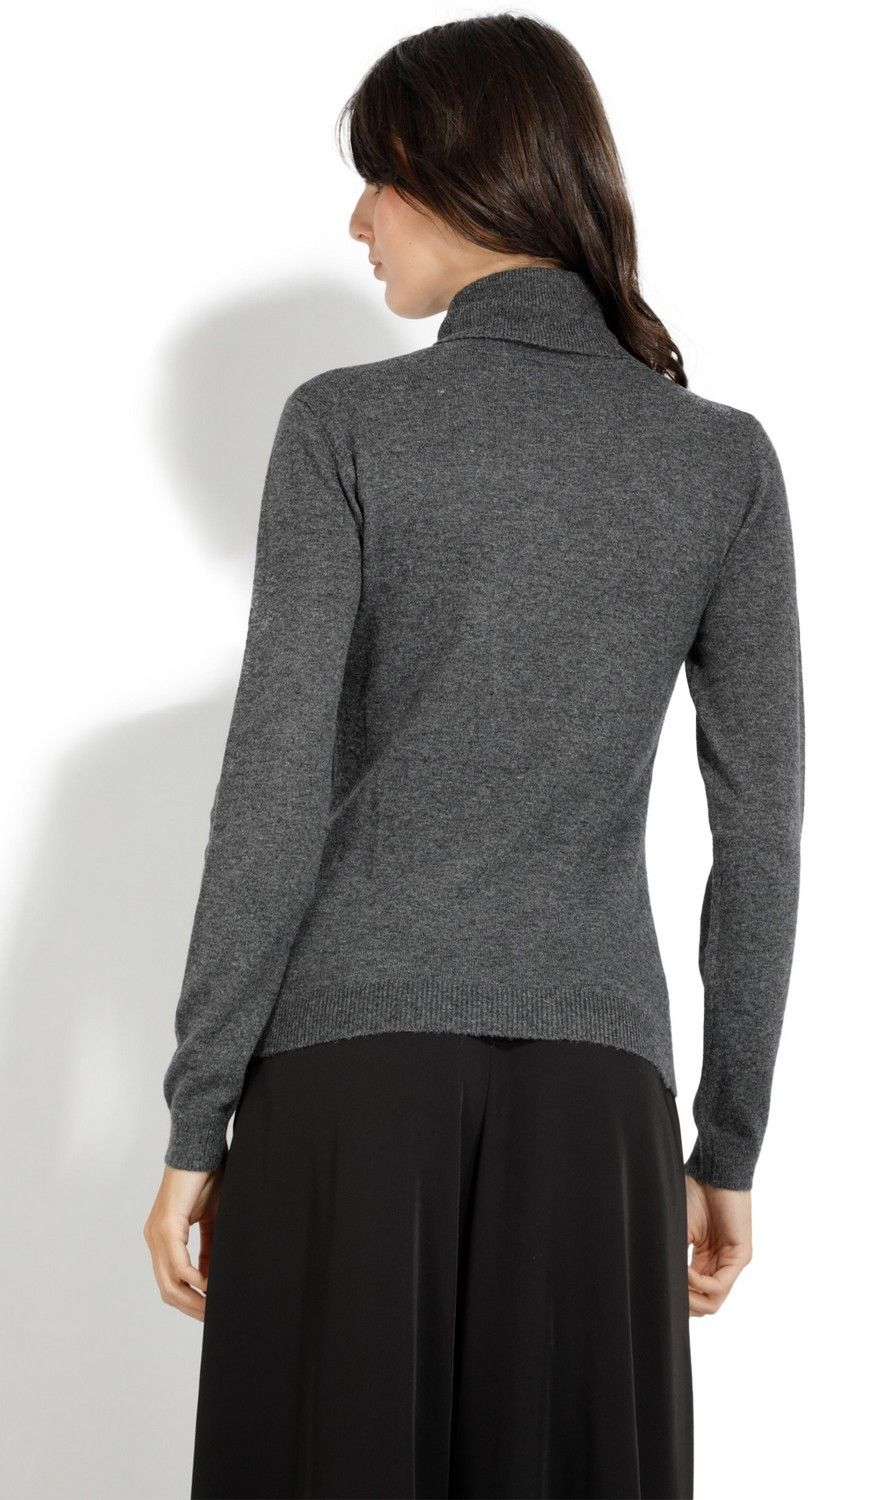 Assuili Turtleneck Ribbed Front Sweater in Grey